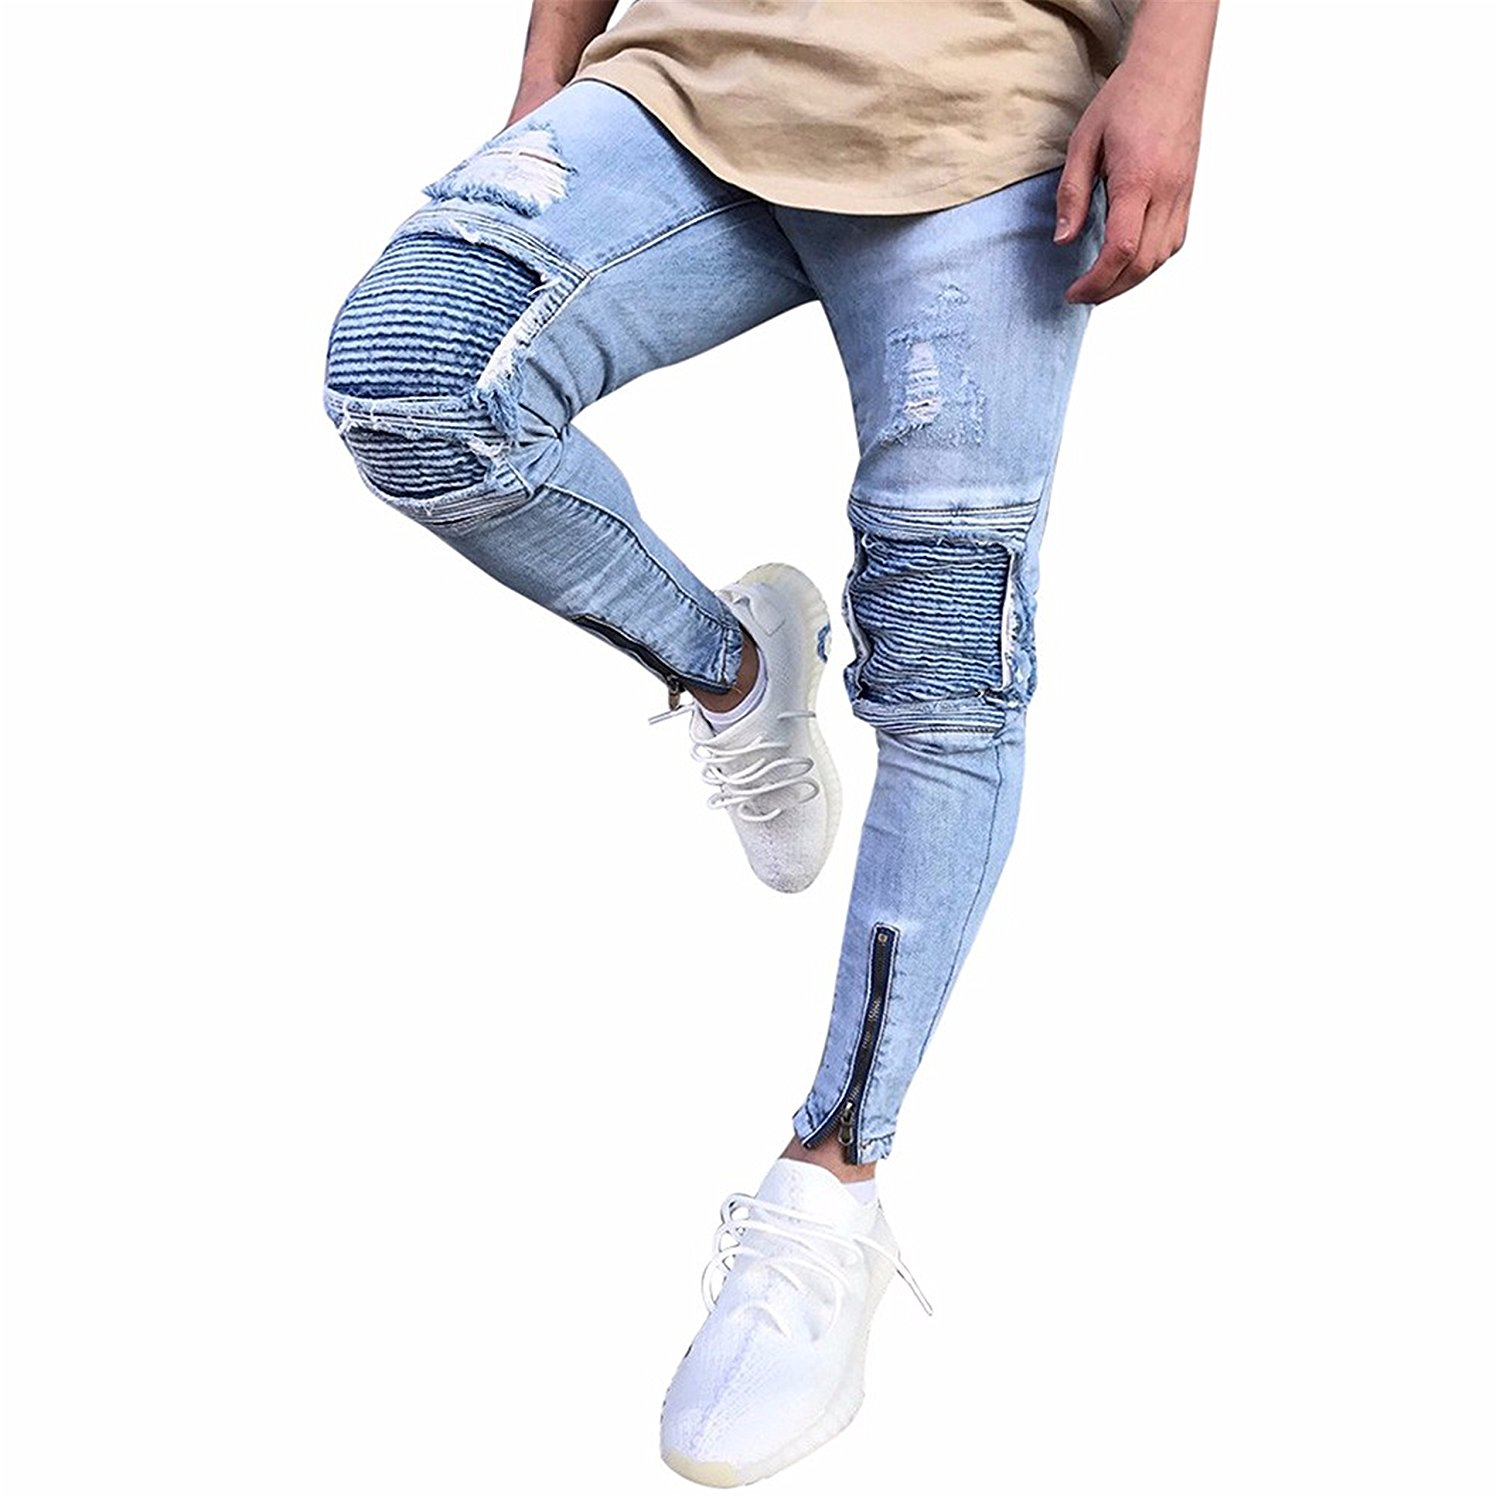 bced9e81ac1 Get Quotations · sfe-Mens Trousers